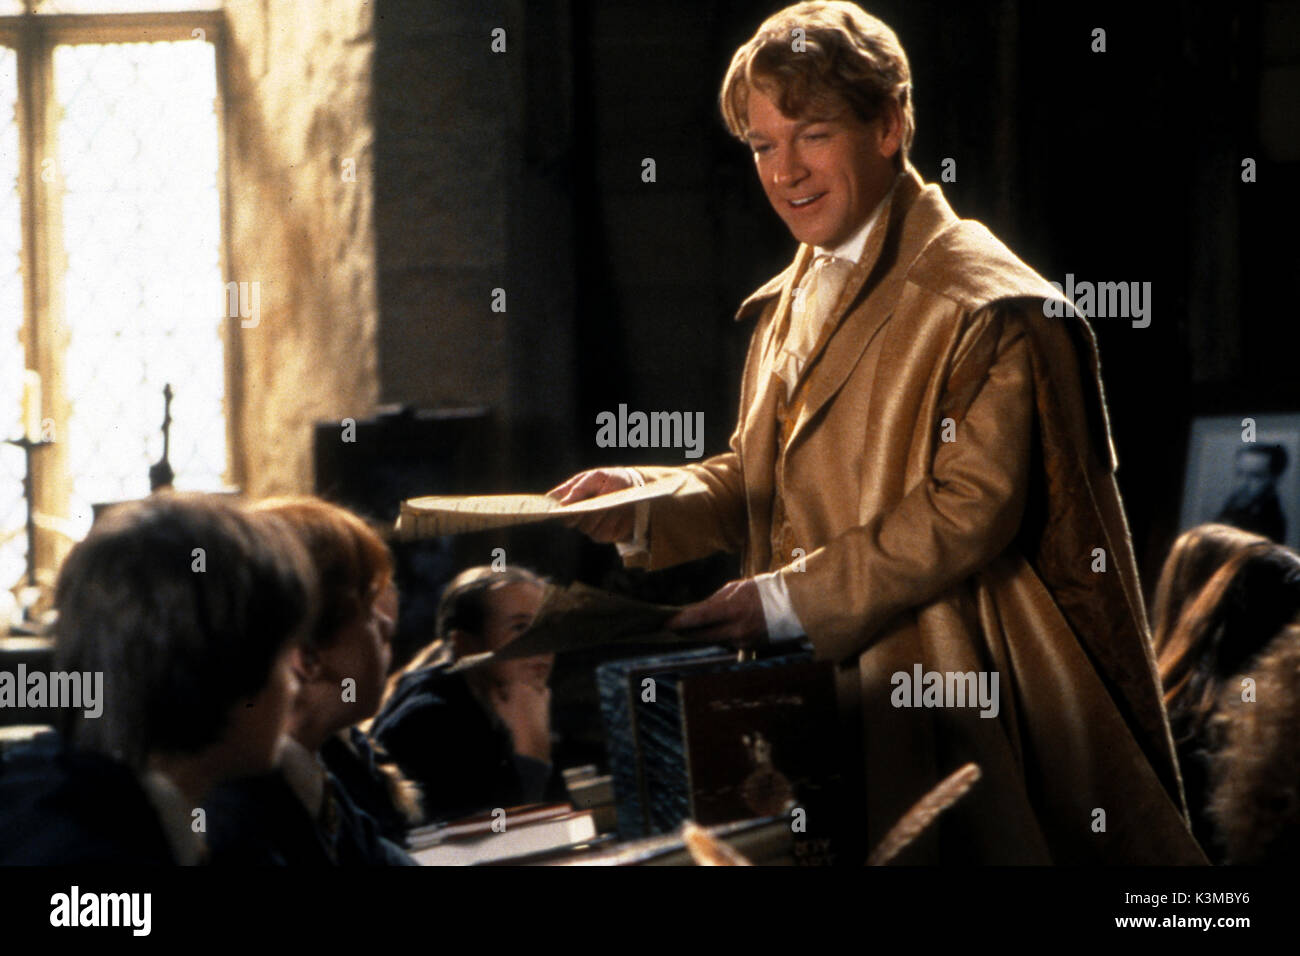 HARRY POTTER AND THE CHAMBER OF SECRETS [BR / US / GER 2002] [L-R] DANIEL RADCLIFFE as Harry Potter, RUPERT GRINT as Ron Weasley, KENNETH BRANAGH as Professor Gilderoy Lockhart     Date: 2002 - Stock Image